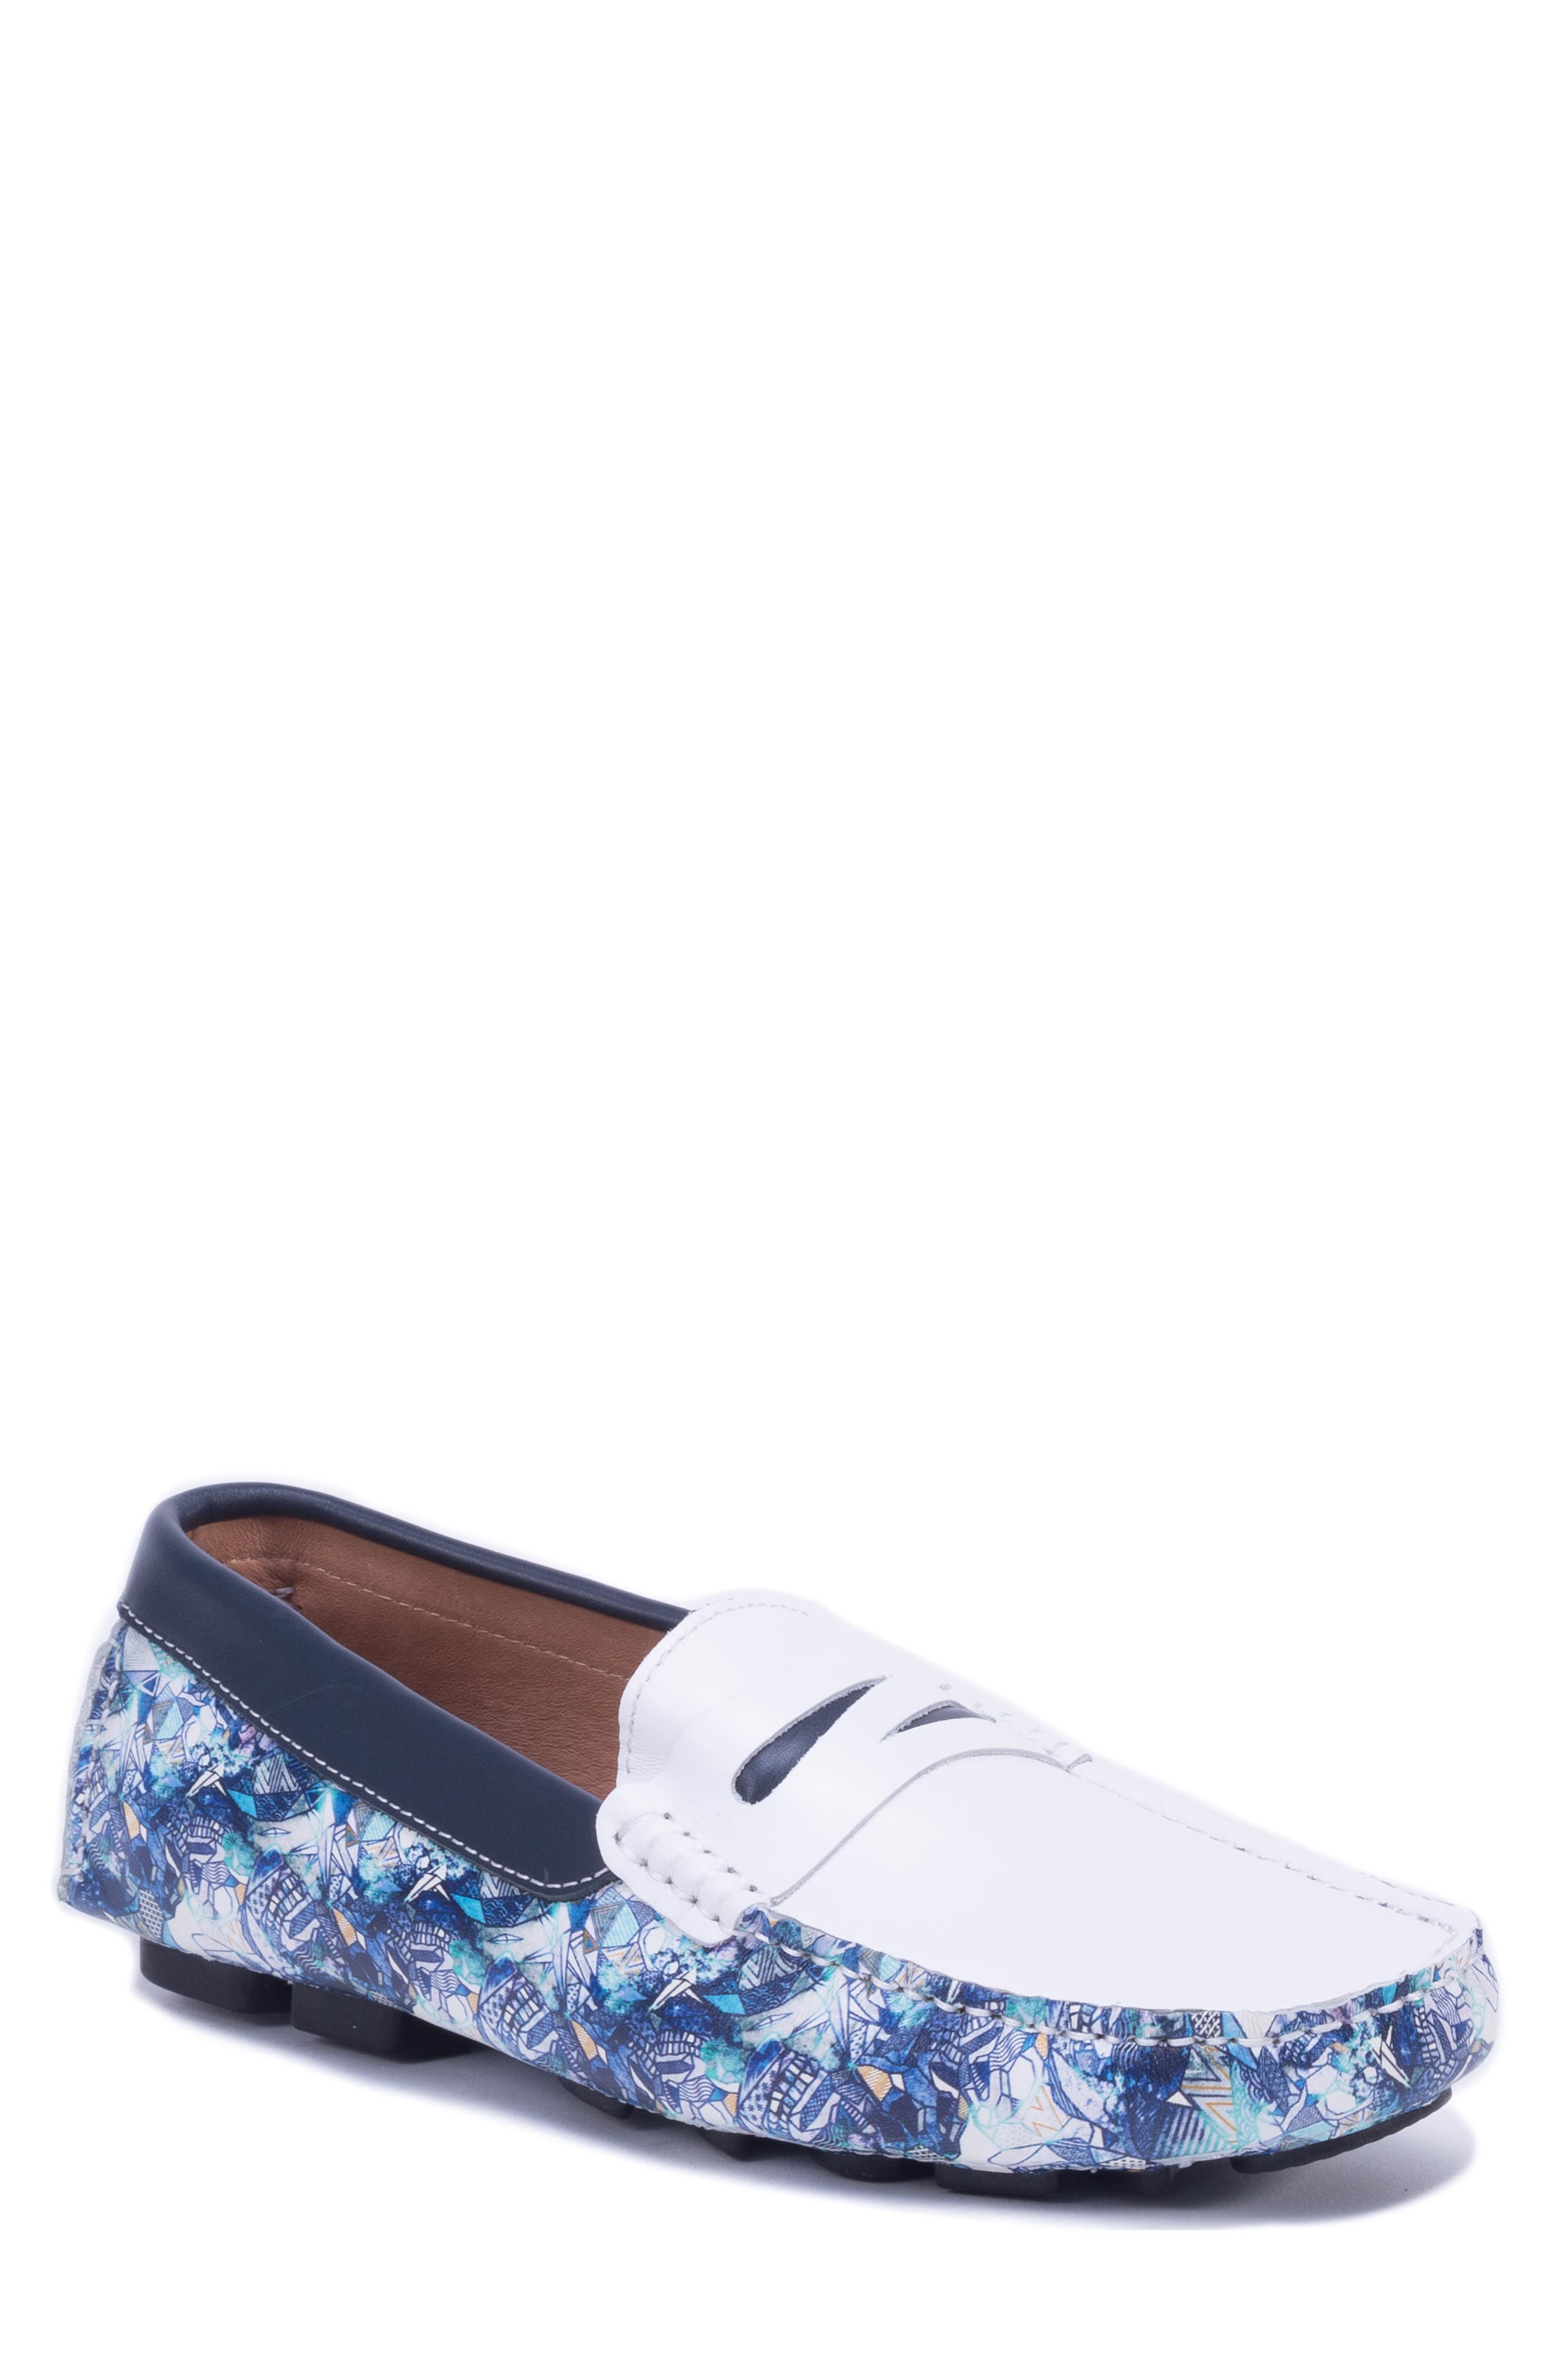 Doggerland Driving Shoe, Main, color, WHITE LEATHER